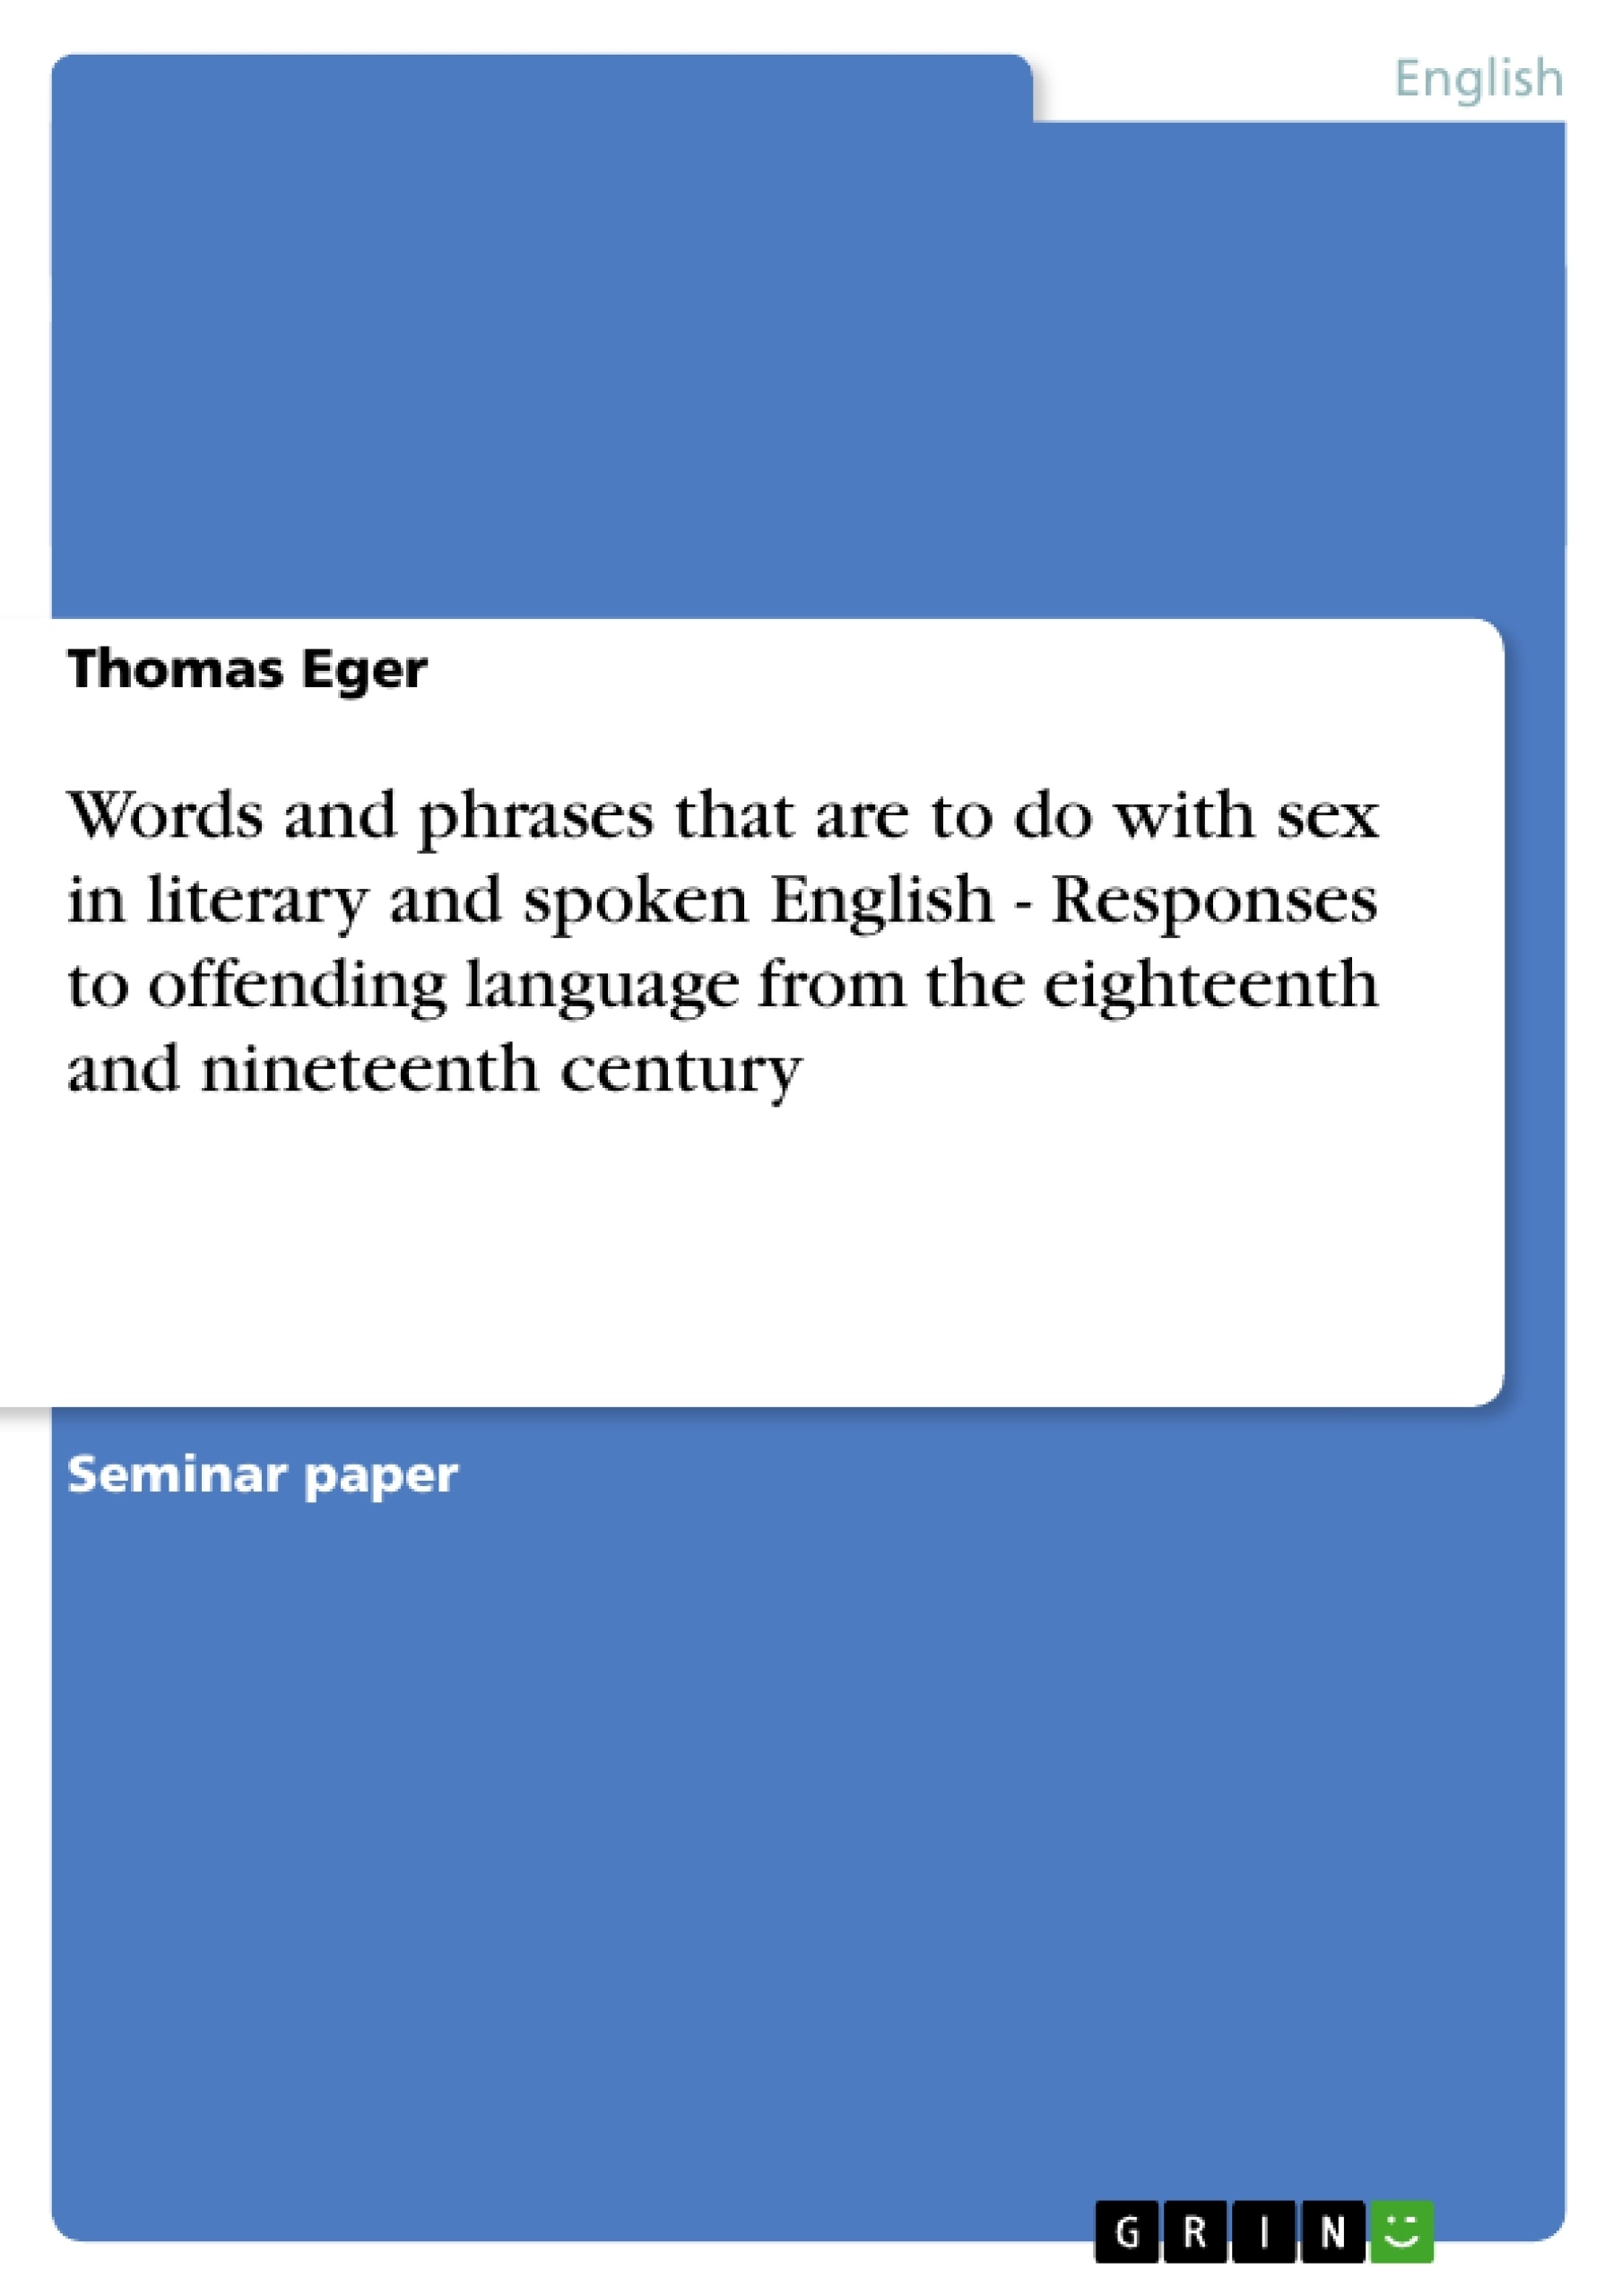 Title: Words and phrases that are to do with sex in literary and spoken English - Responses to offending language from the eighteenth and nineteenth century